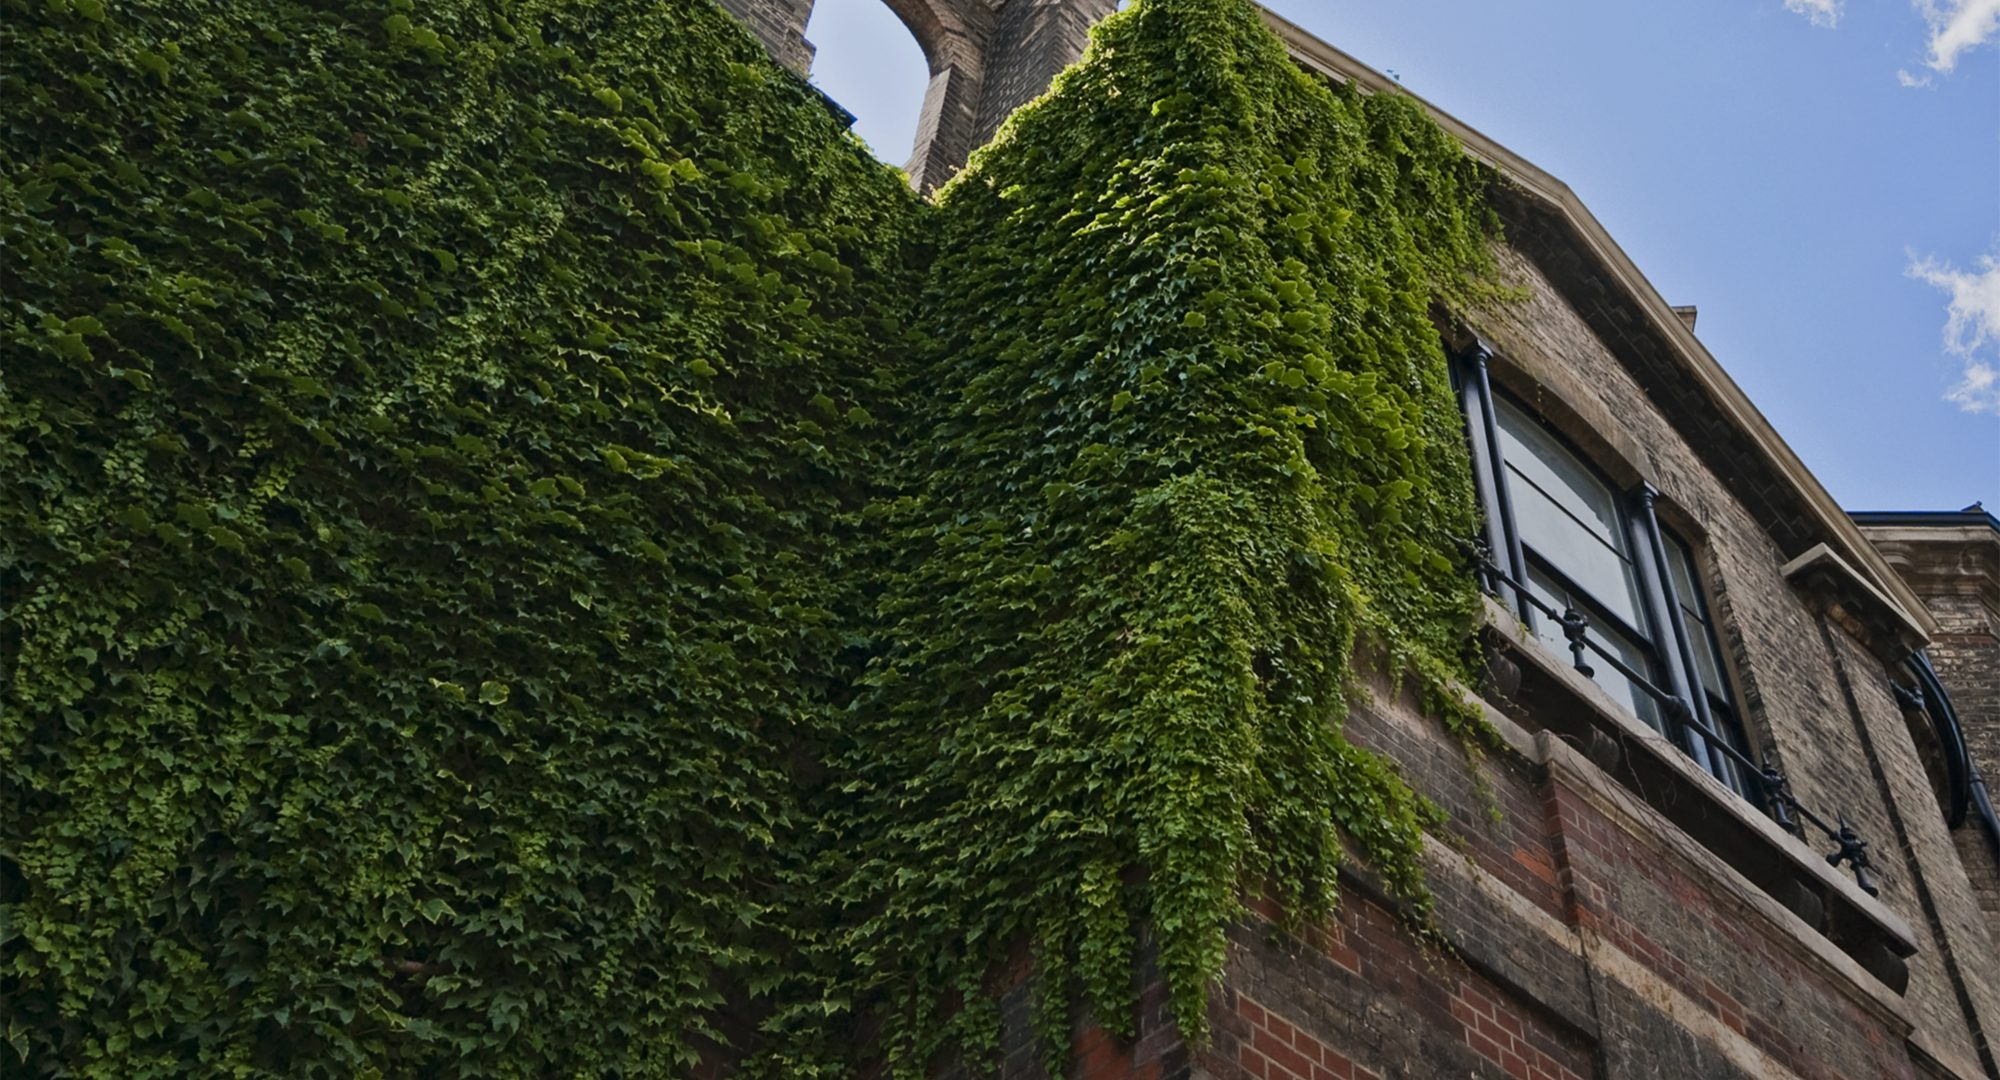 image shot from a low angle, showing part of the outside architecture of the Seale Hayne hospital, with ivy growing up the wall